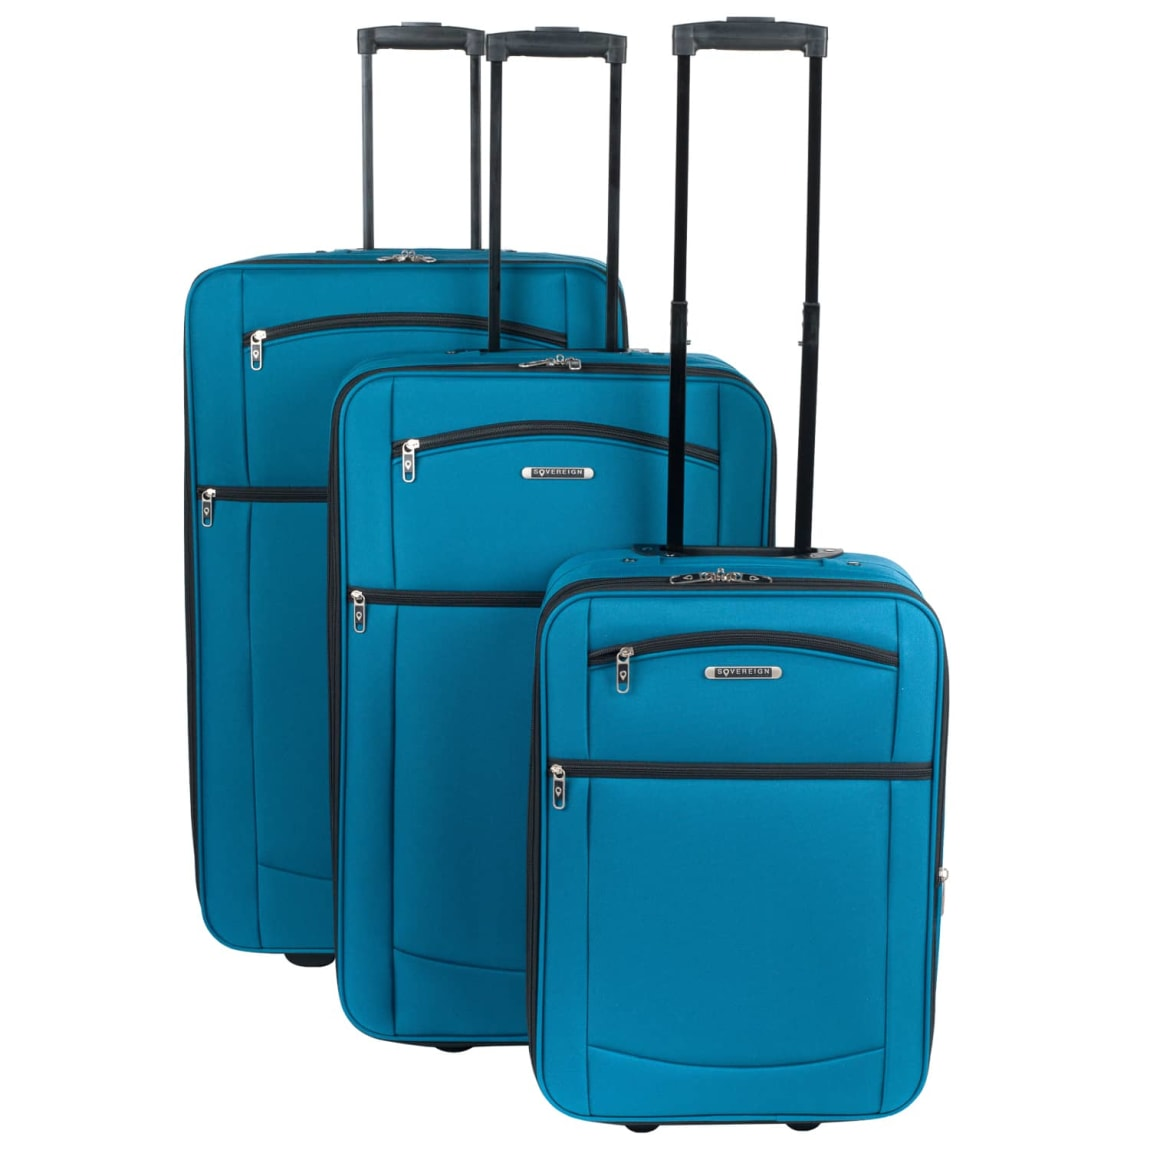 Sovereign Suitcase 55cm - Teal